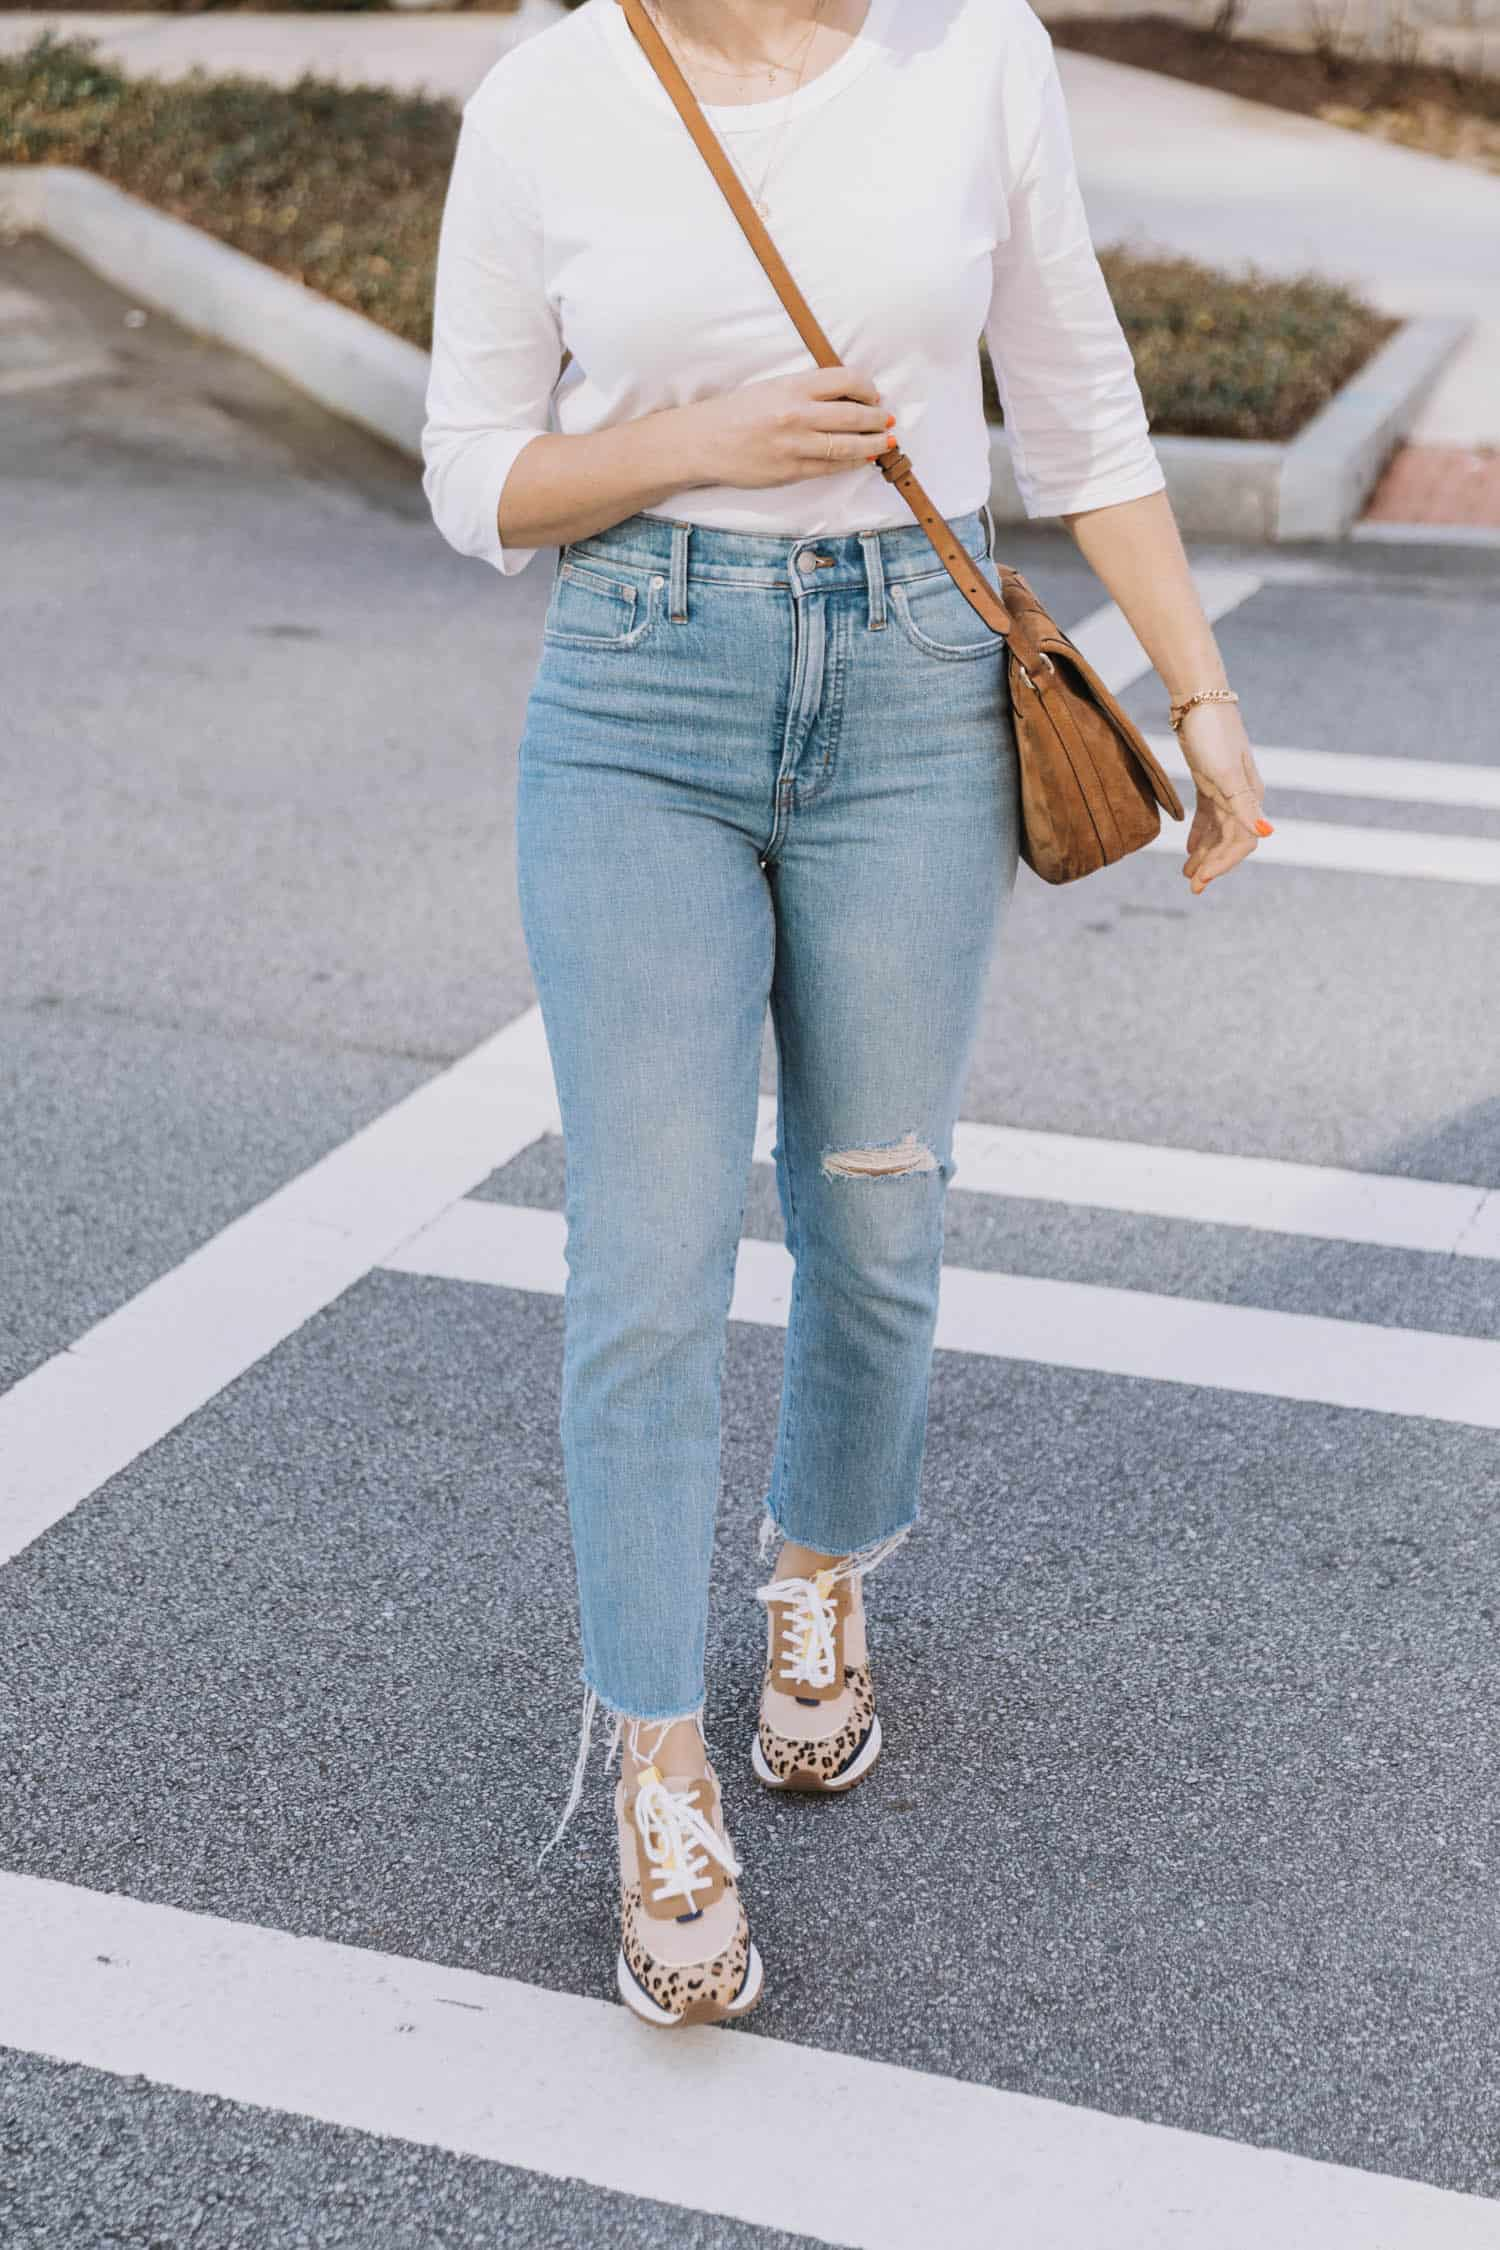 Madewell Trainers Review and jeans